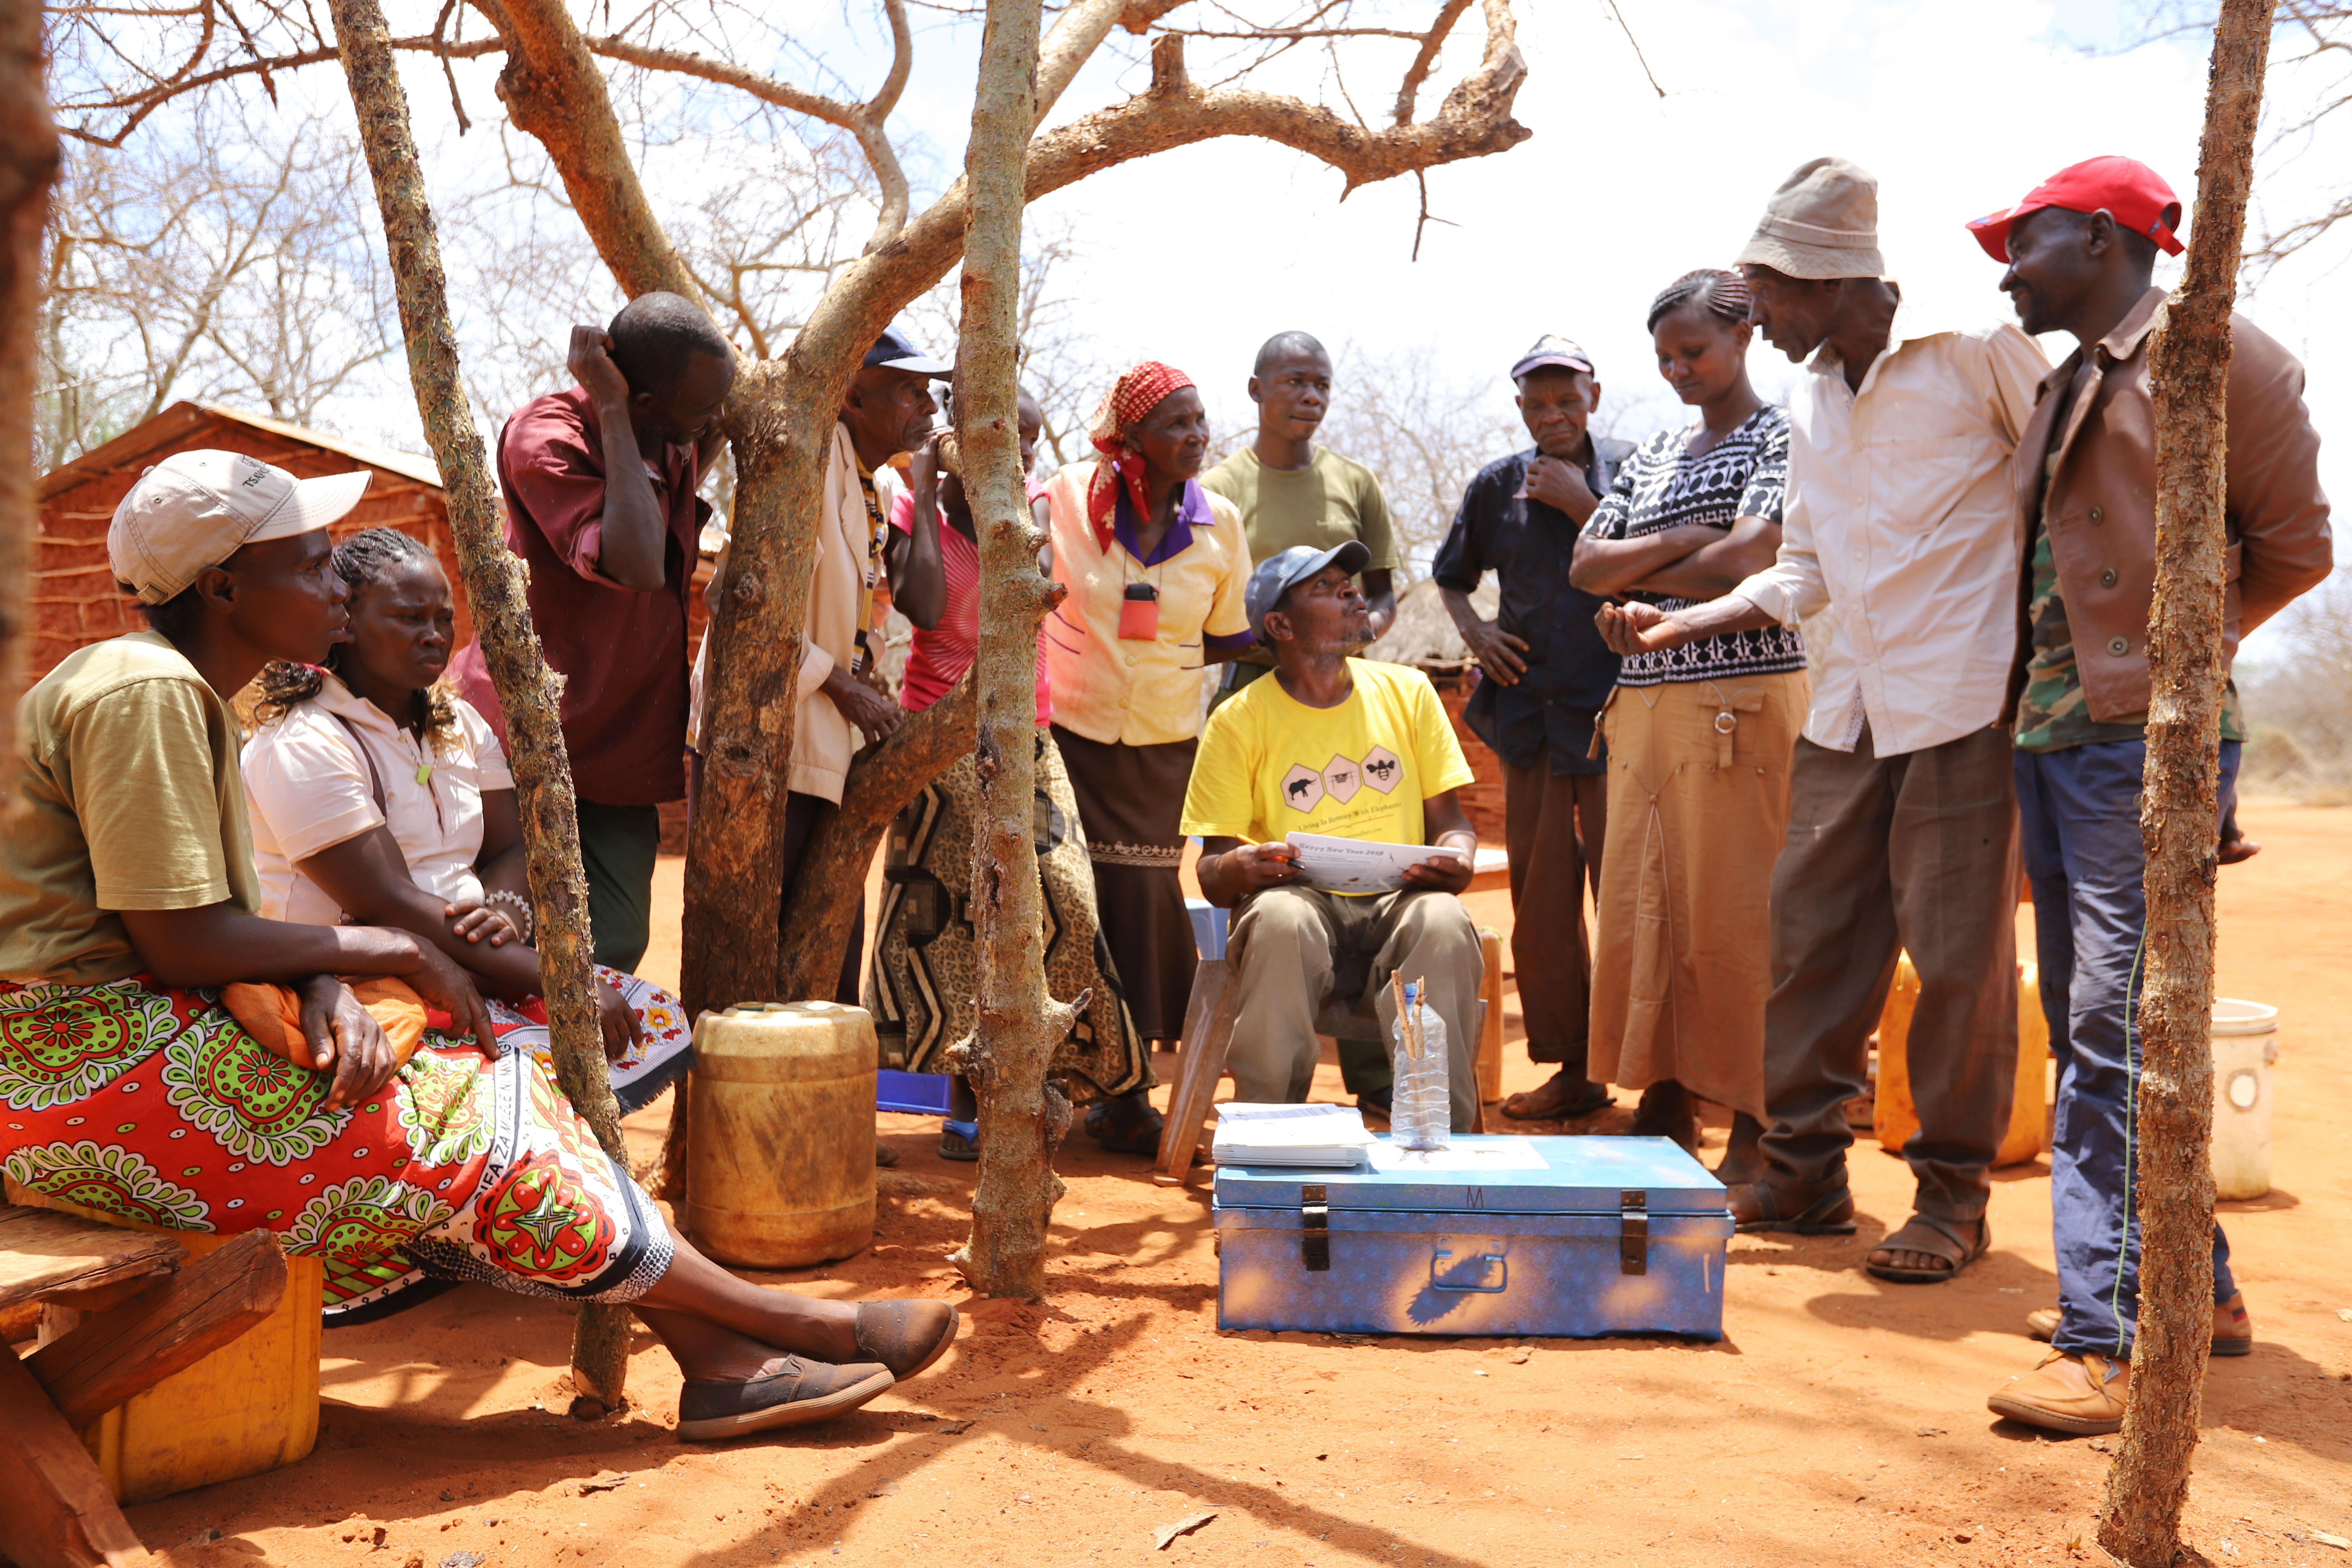 Emmanuel-training-the-farmers-how-to-fill-in-the-different-data-sheets-after-beehive-fence-construction-in-Kamungi-Conservancy-Tsavo-Trust2-©-2018-Naiya-Raja